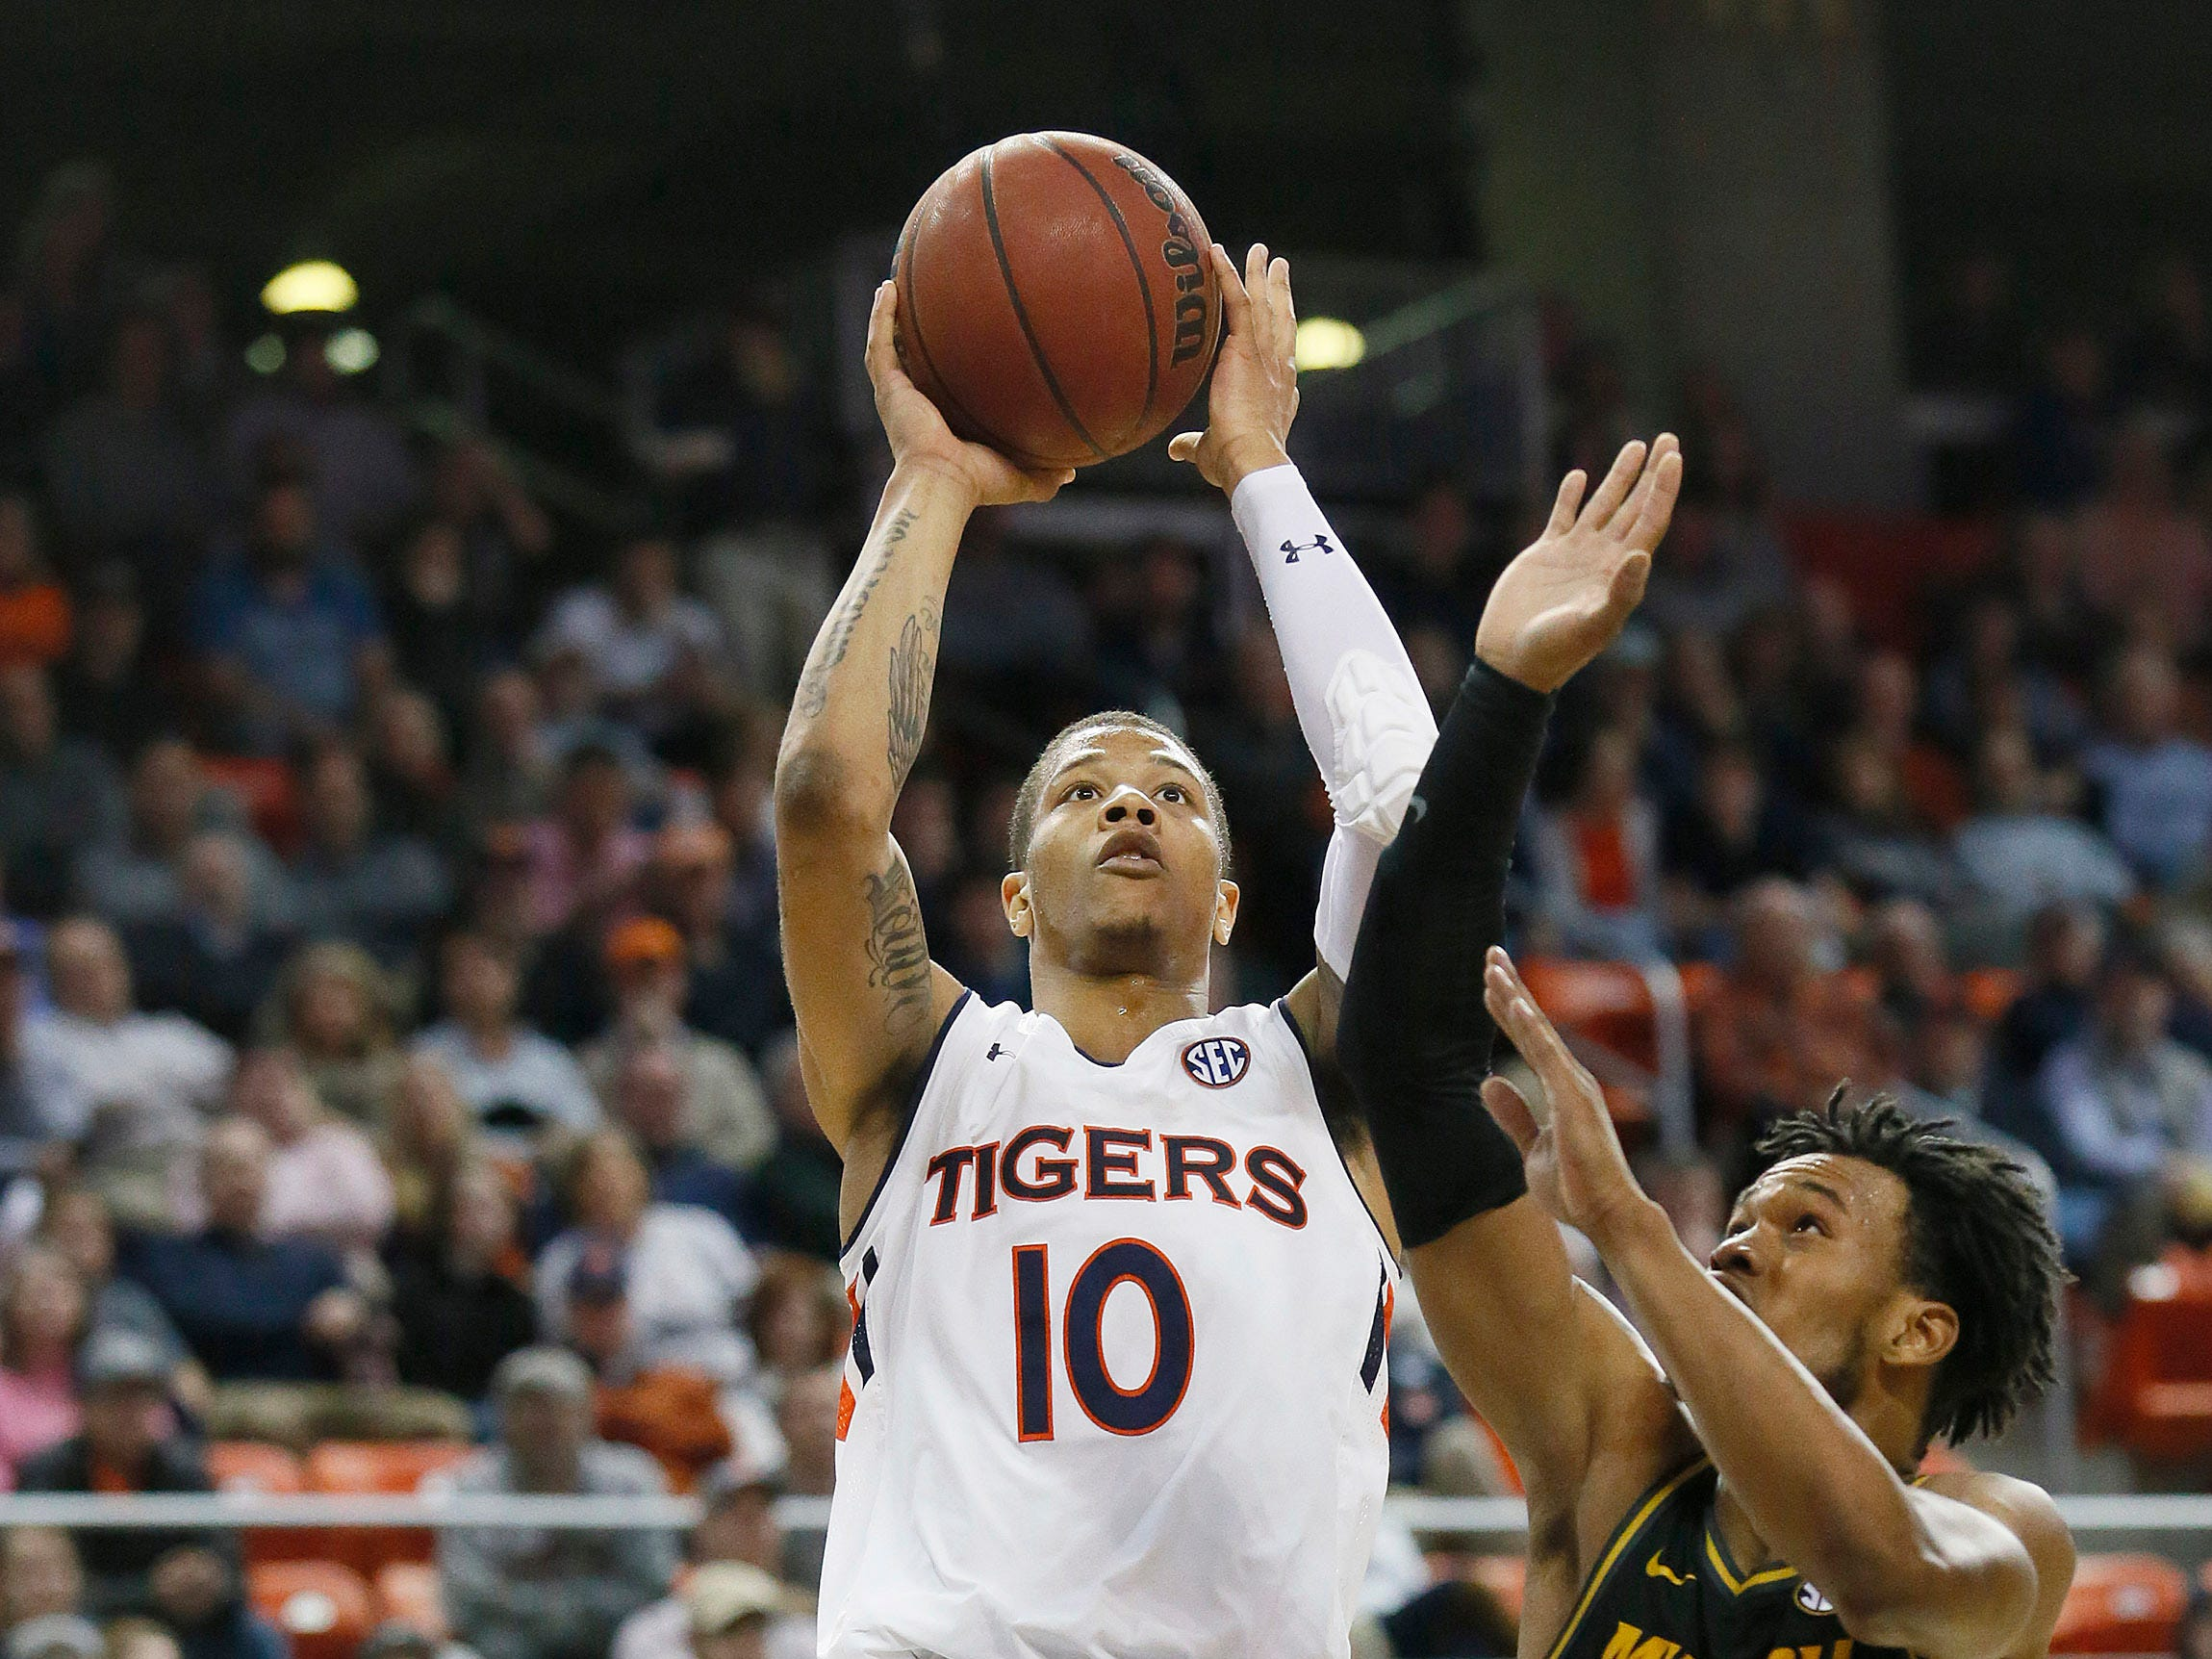 Jan 30, 2019; Auburn, AL, USA; Auburn Tigers guard Samir Doughty (10) shoots over Missouri Tigers guard Torrence Watson (0) during the second half at Auburn Arena. Mandatory Credit: John Reed-USA TODAY Sports